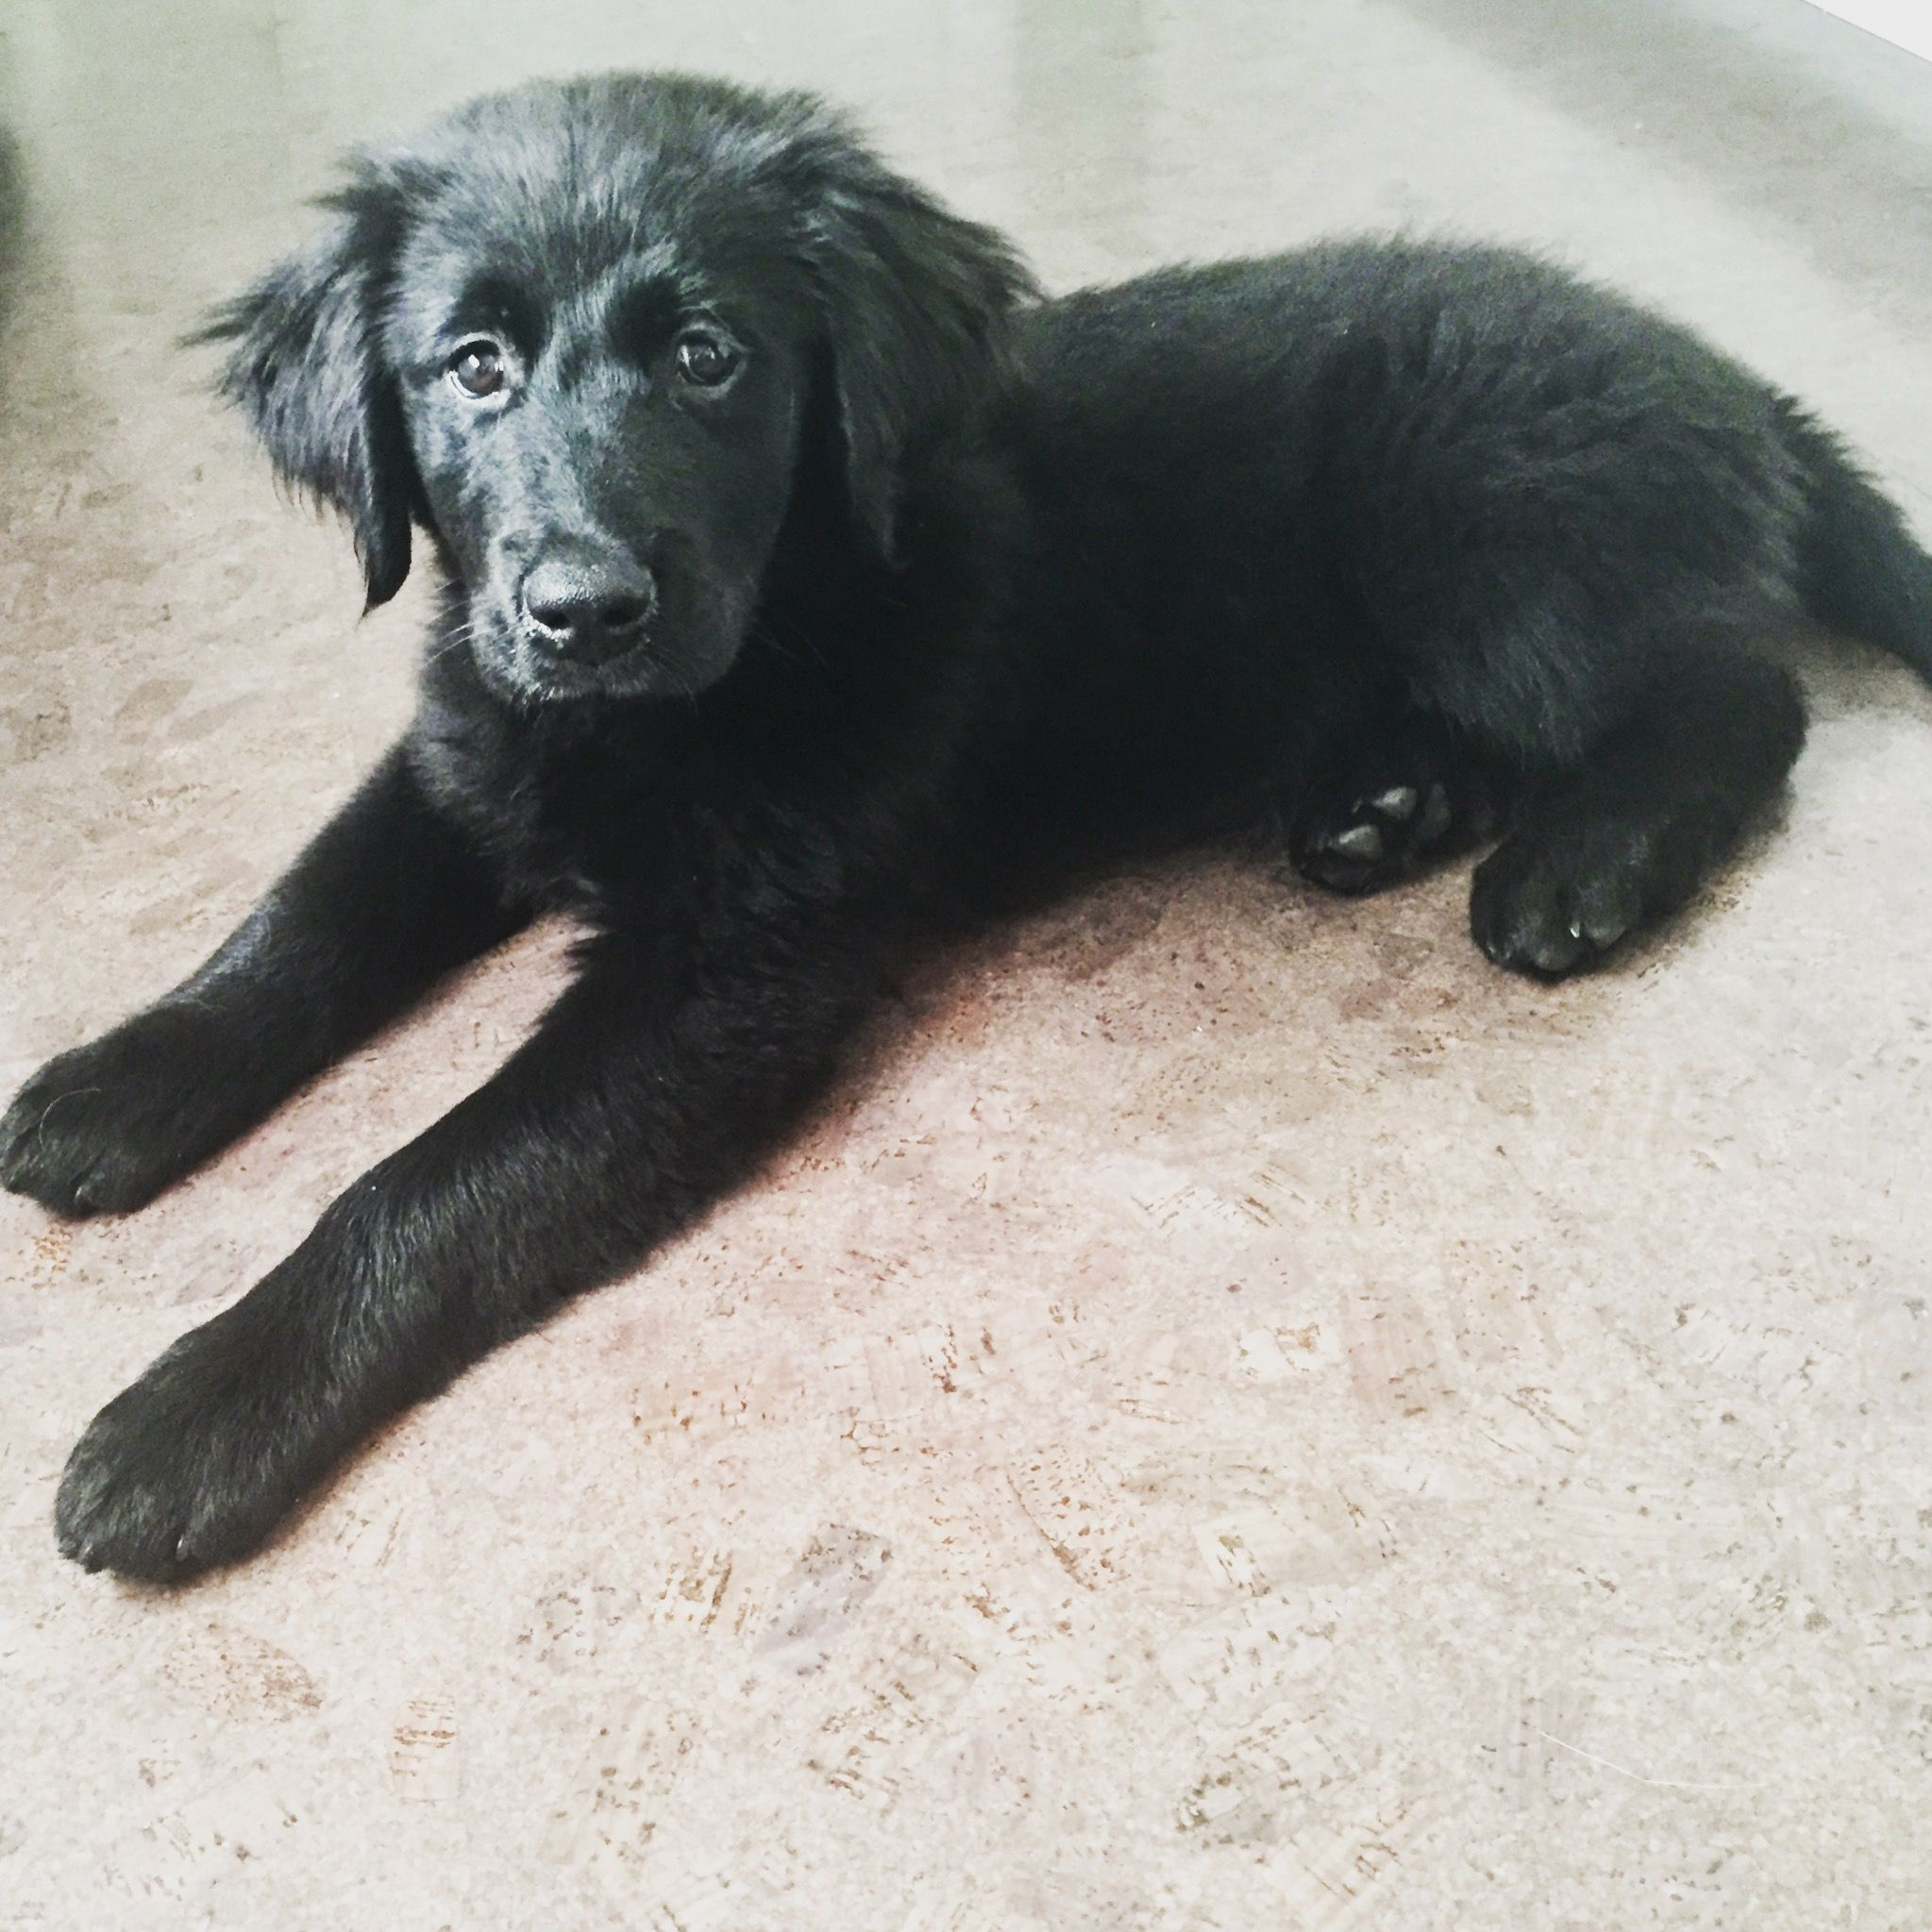 Puppy Black Lab Golden Retriever Mix Retriever Puppy Golden Retriever Mix Puppies Dogs Golden Retriever